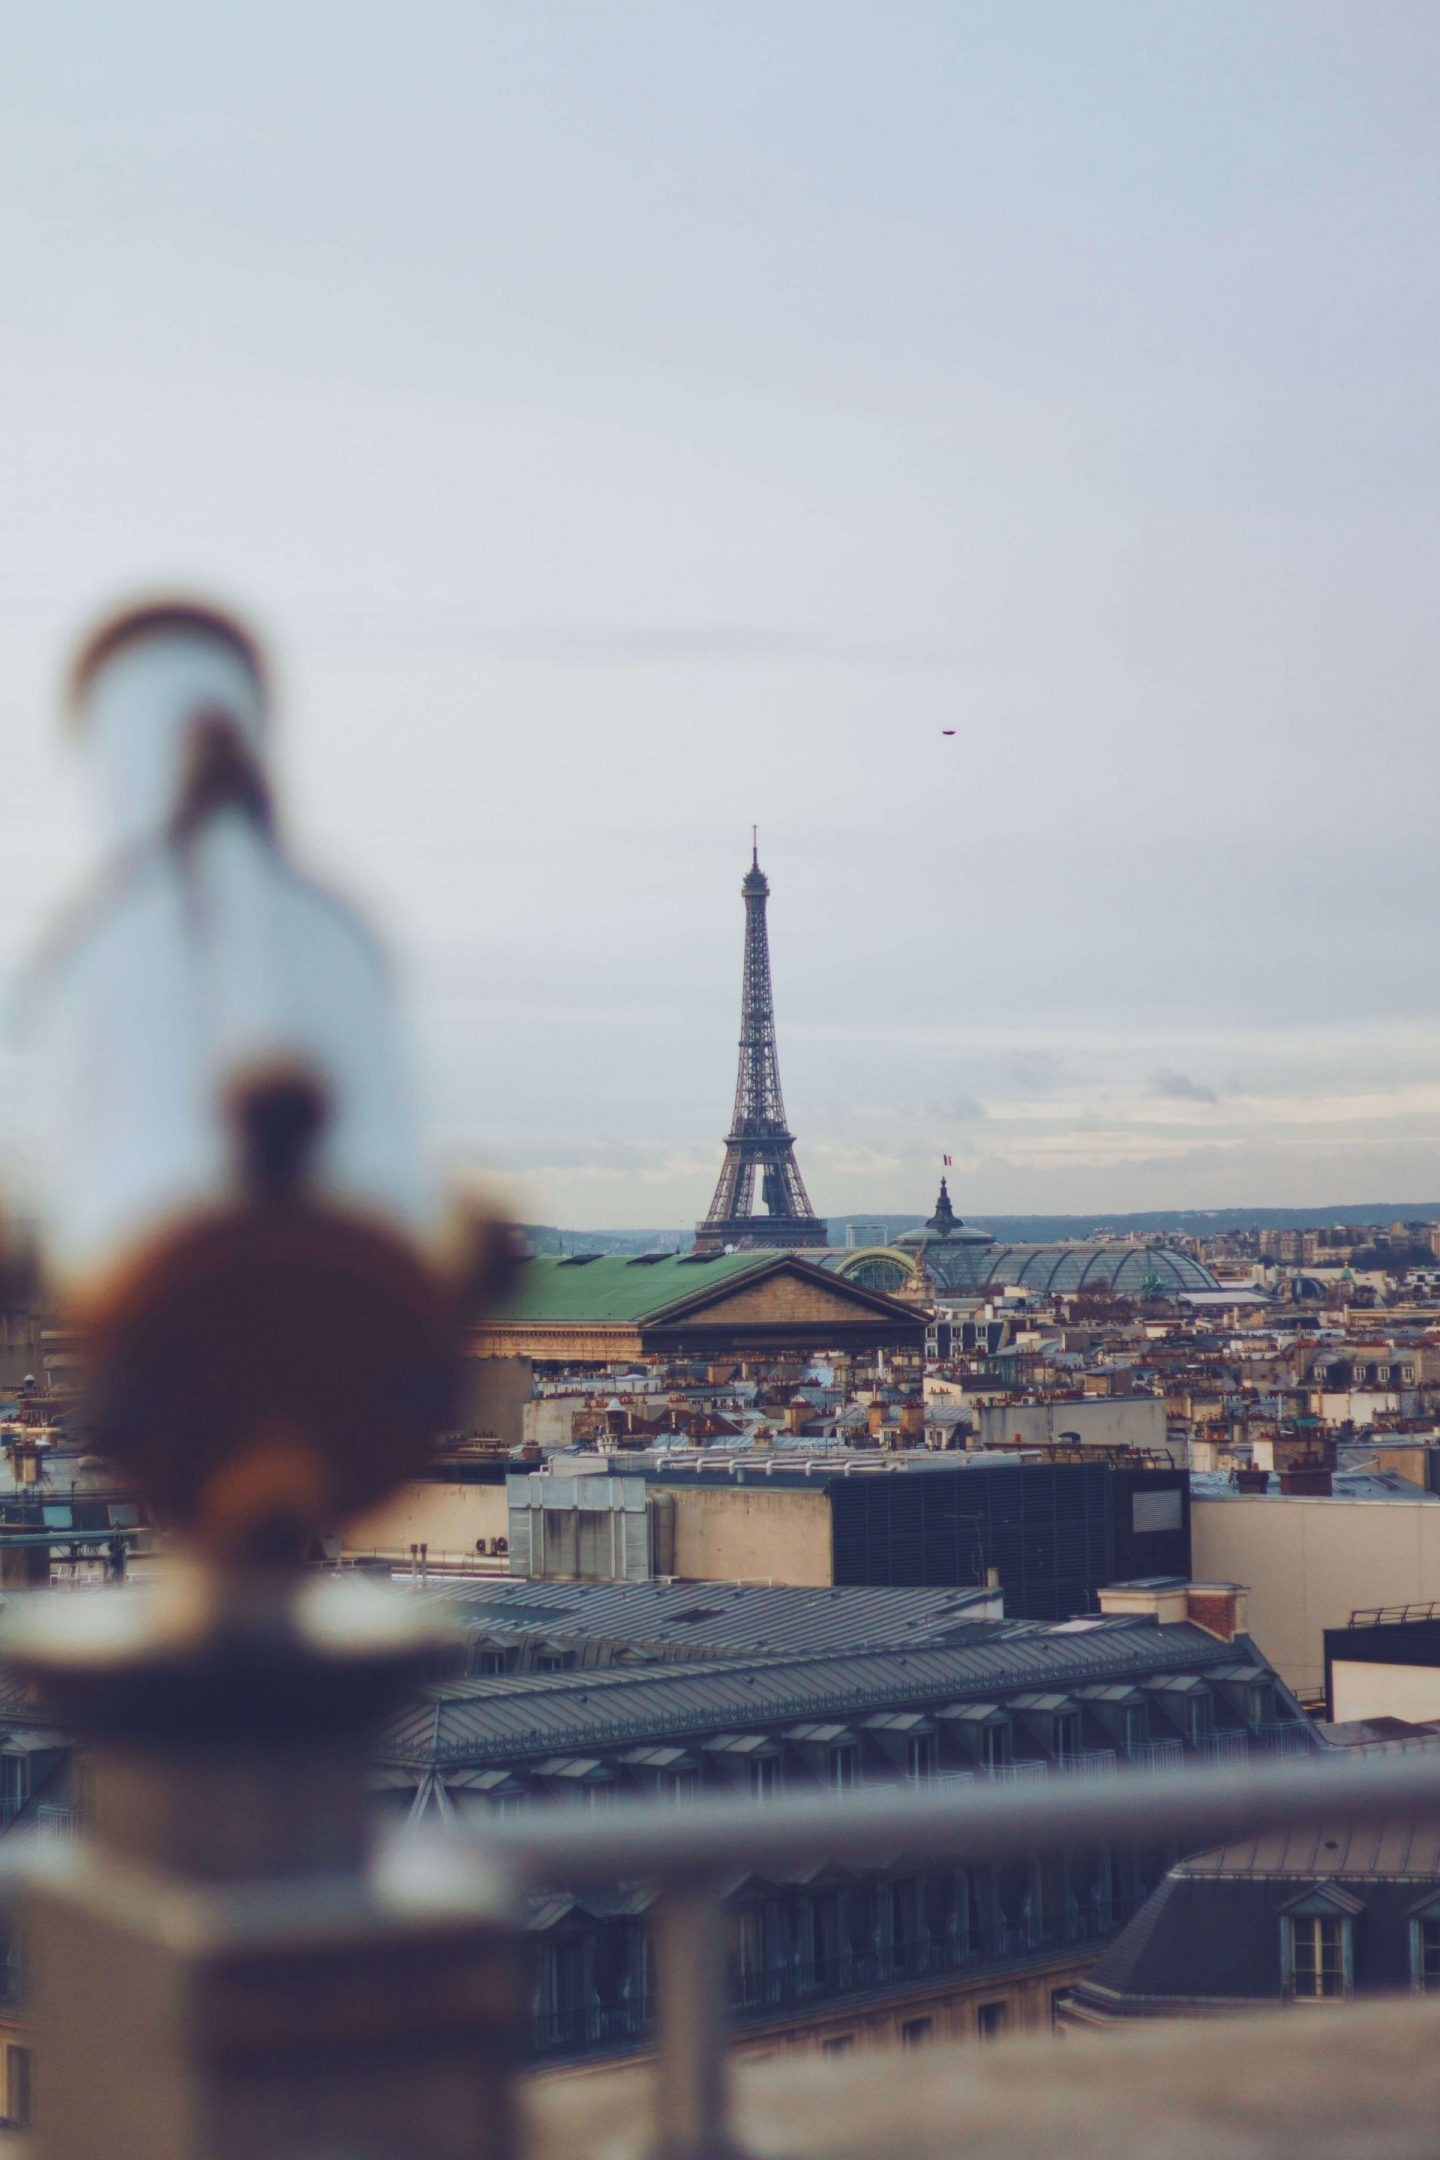 view of eiffel tower, things to do in paris, bucket list experiences, city in france, view from galeries lafayette